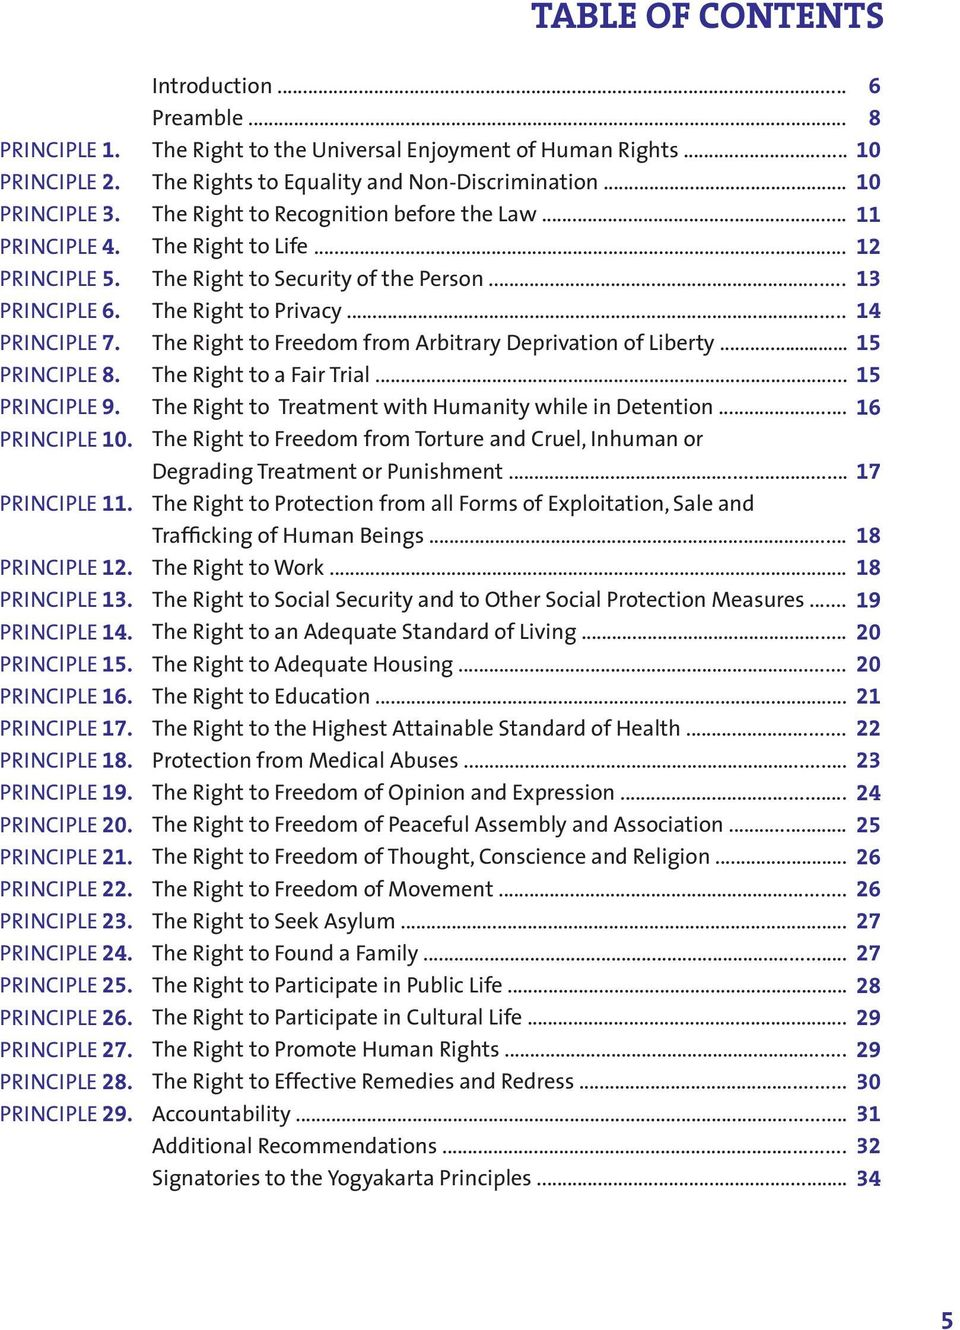 TABLE OF CONTENTS Introduction... Preamble... The Right to the Universal Enjoyment of Human Rights... The Rights to Equality and Non-Discrimination... The Right to Recognition before the Law.